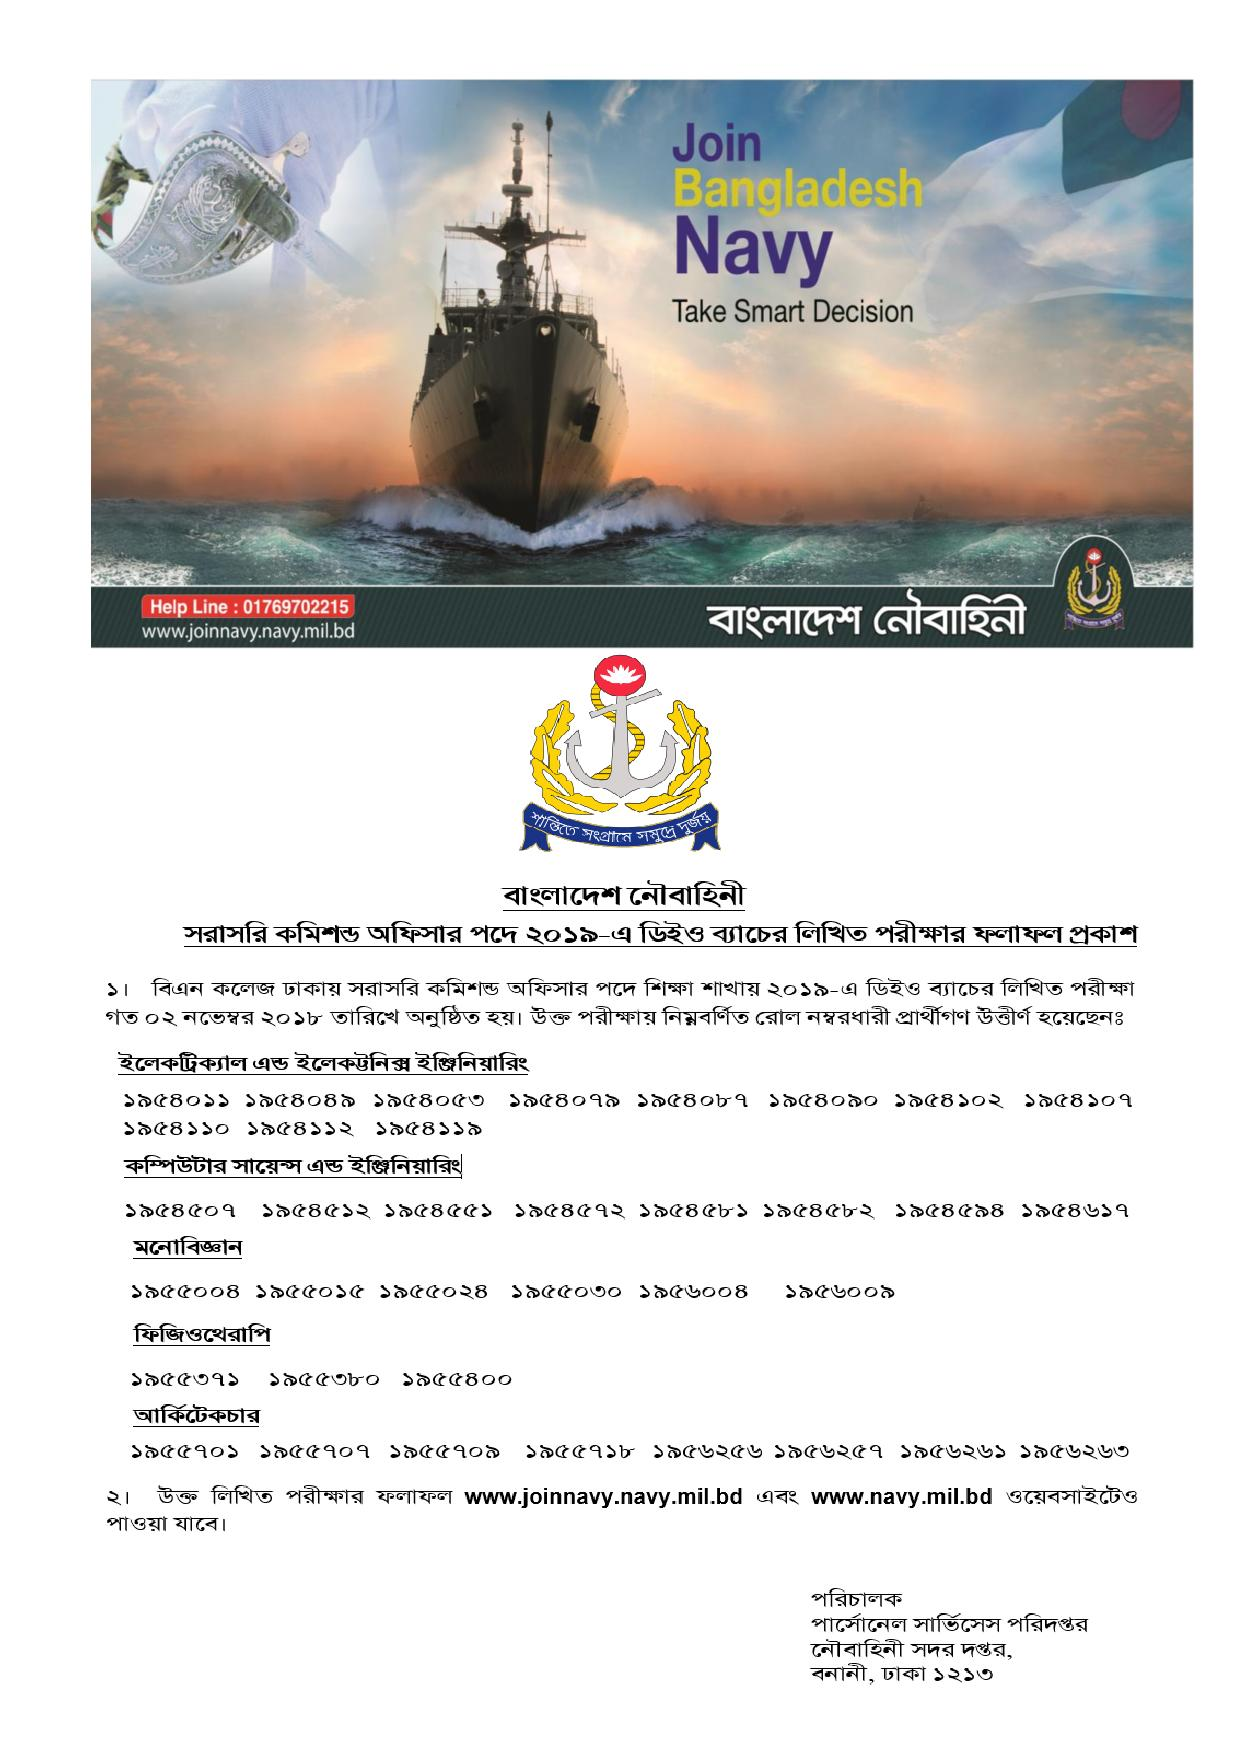 Bangladesh Navy Written Exam Result 2018 www navy mil bd result 1